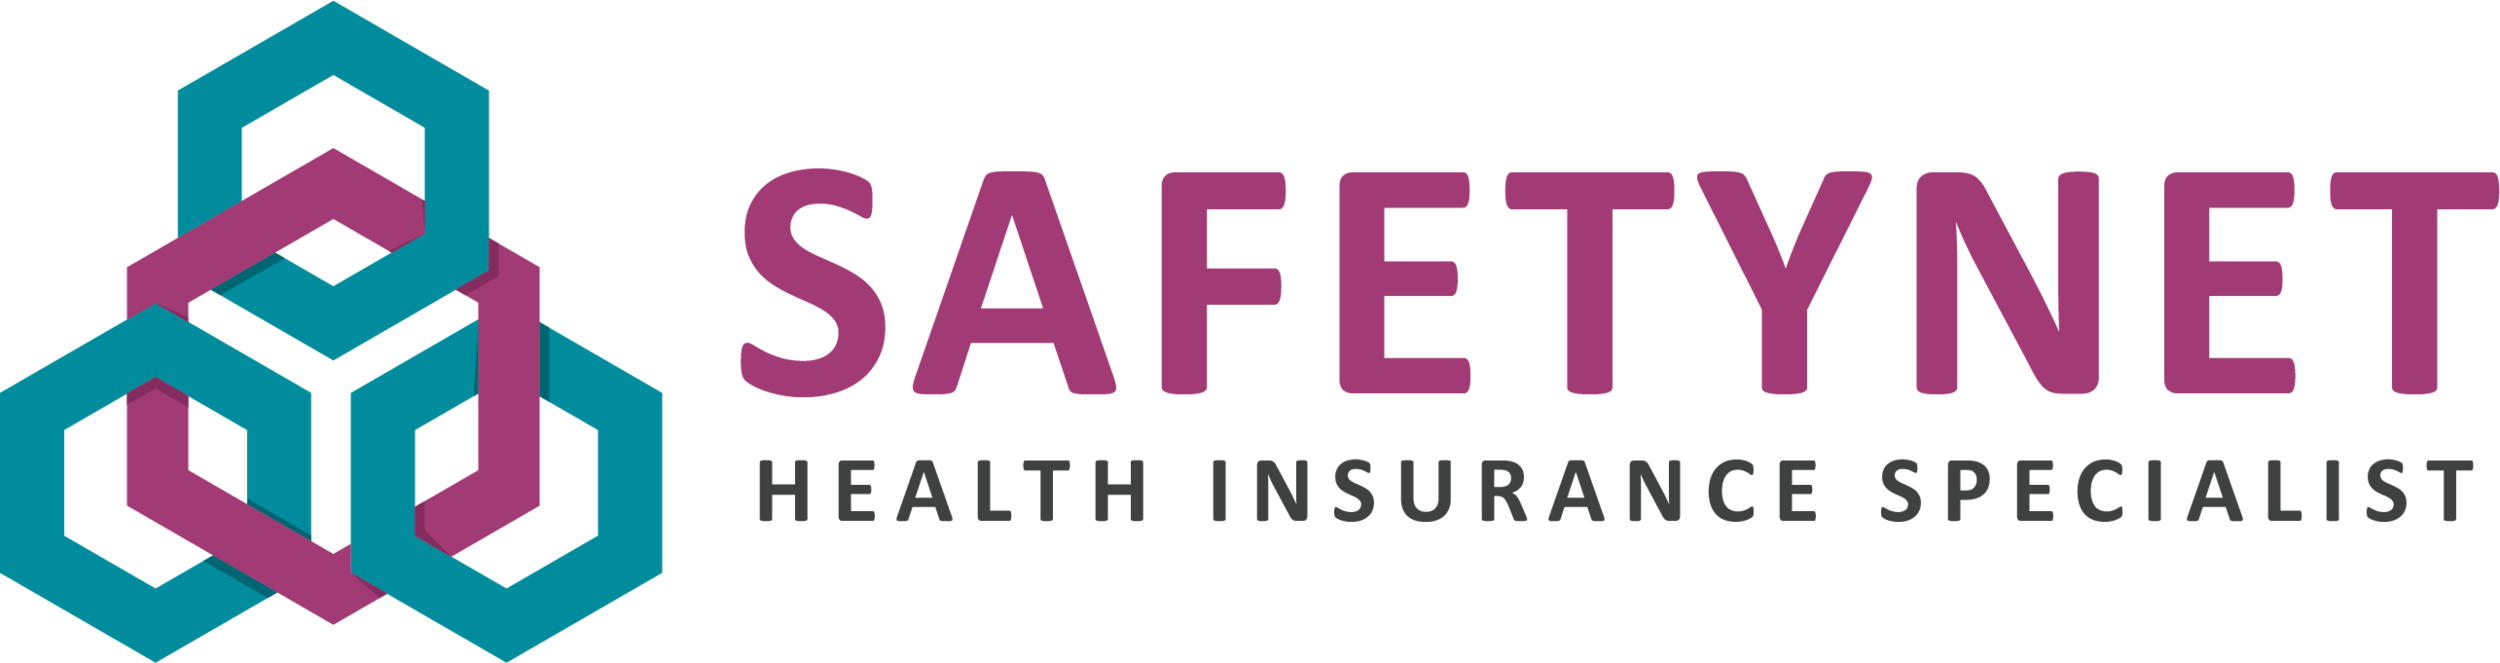 Safetynet Logo (specialist) - 2018 (1).png